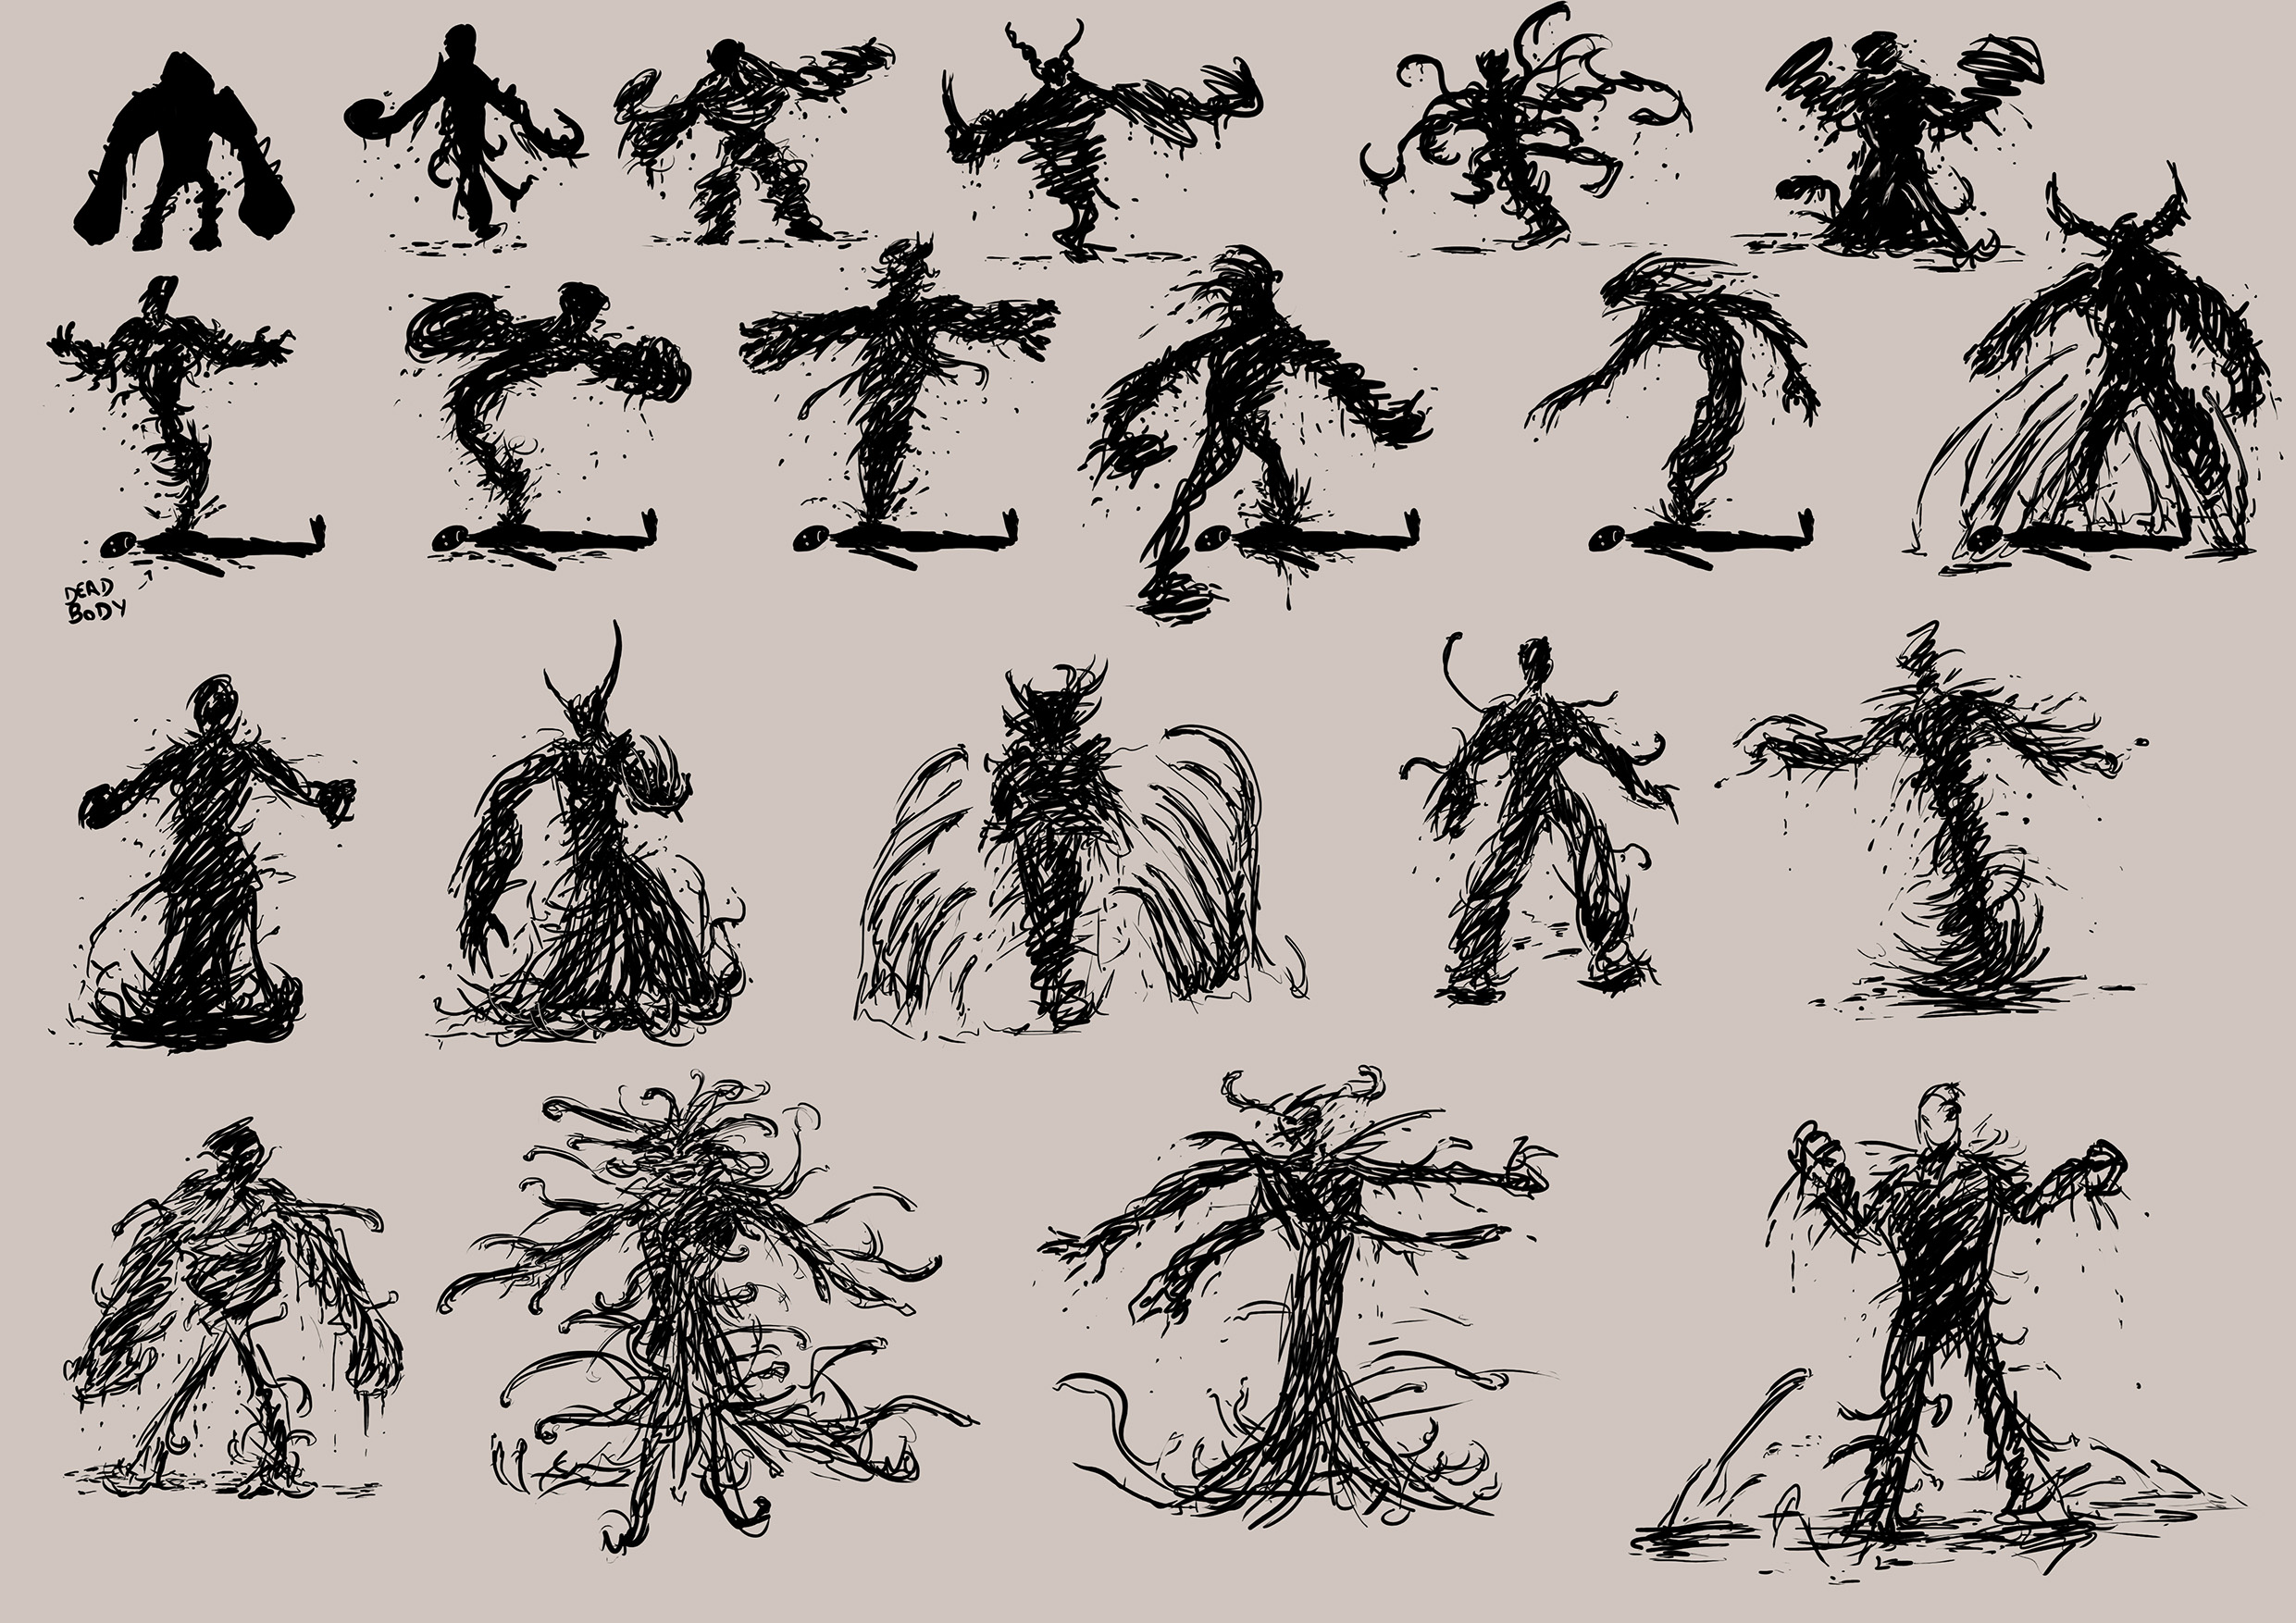 [Image: 13_04_13_golem_silhouetes_by_mateusrocha-d6298y9.jpg]